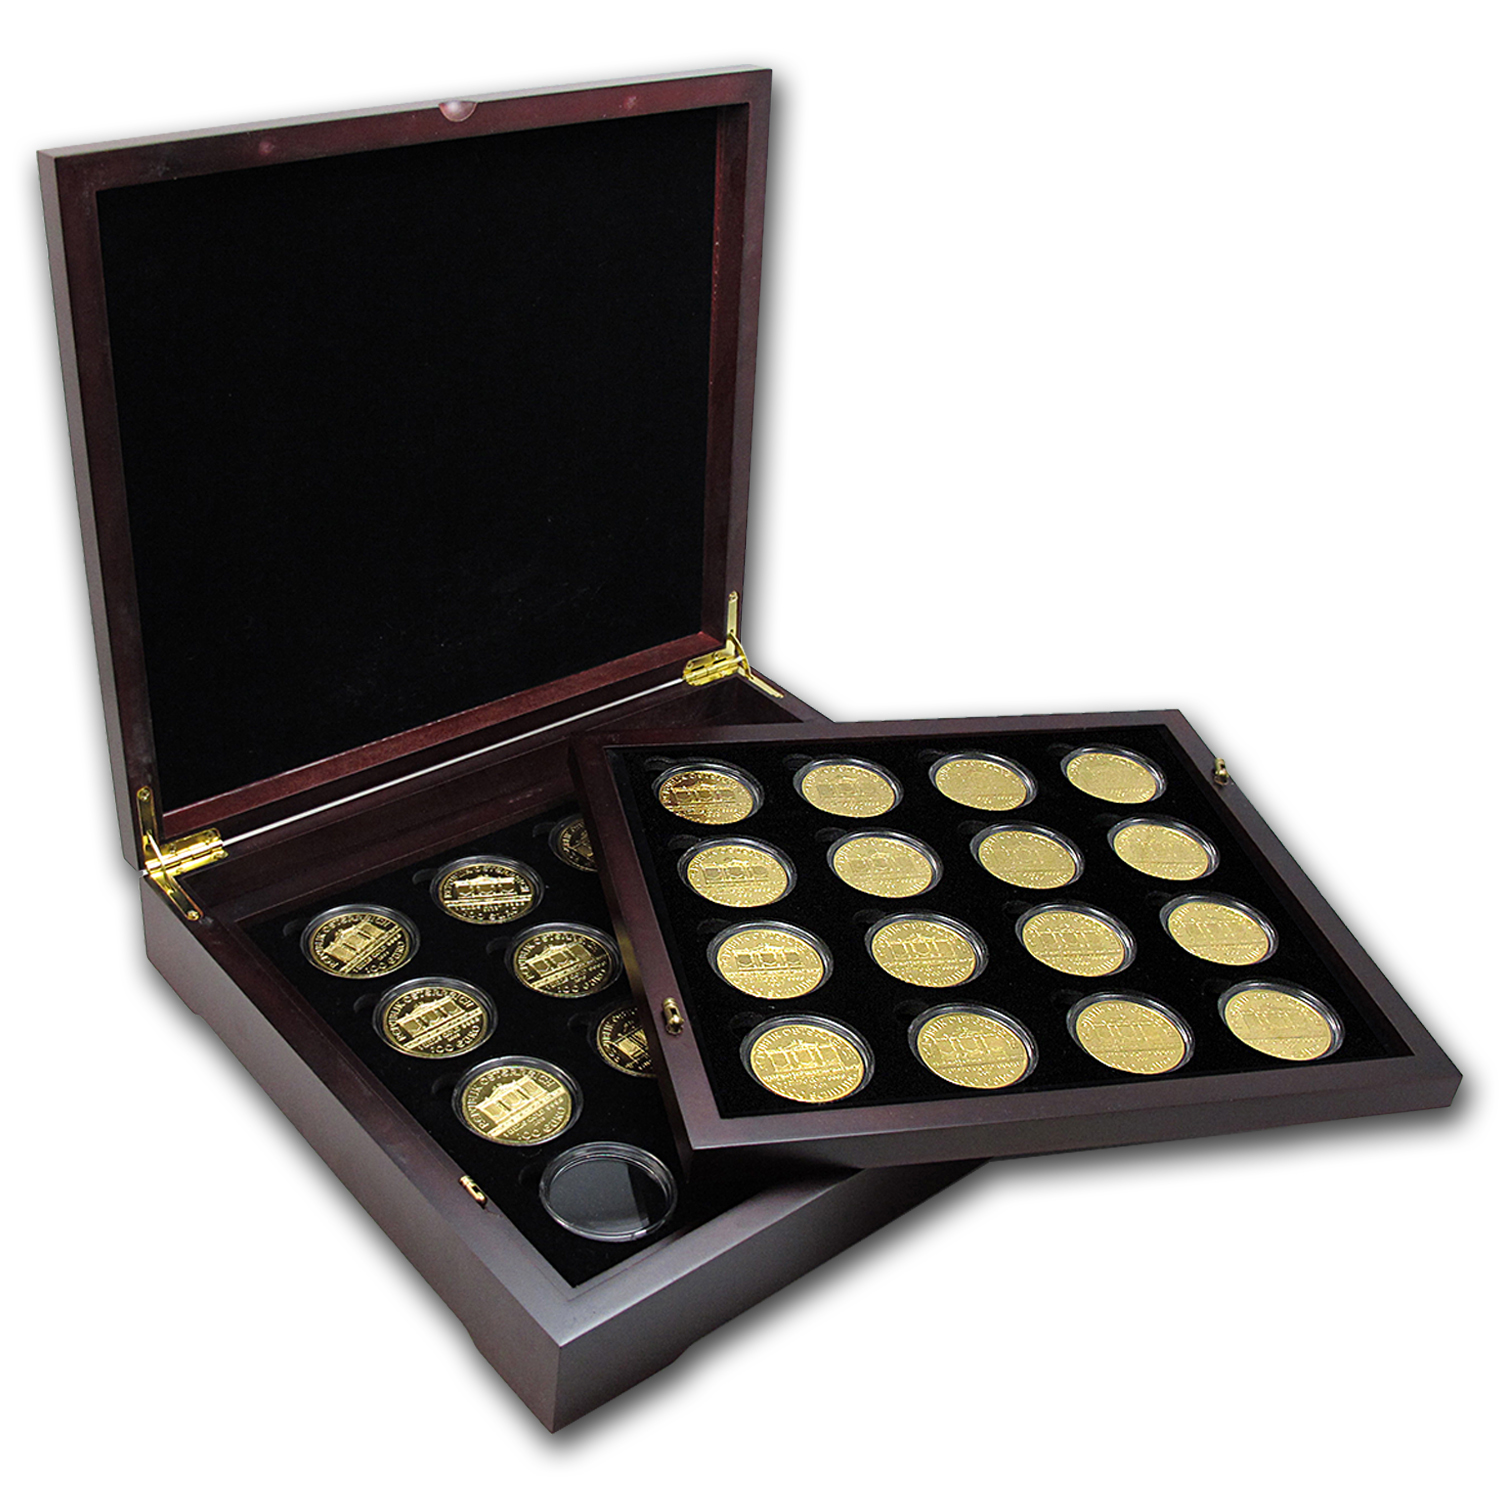 1989-2015 Austria 27-Coin 1 oz Gold Philharmonic Set BU